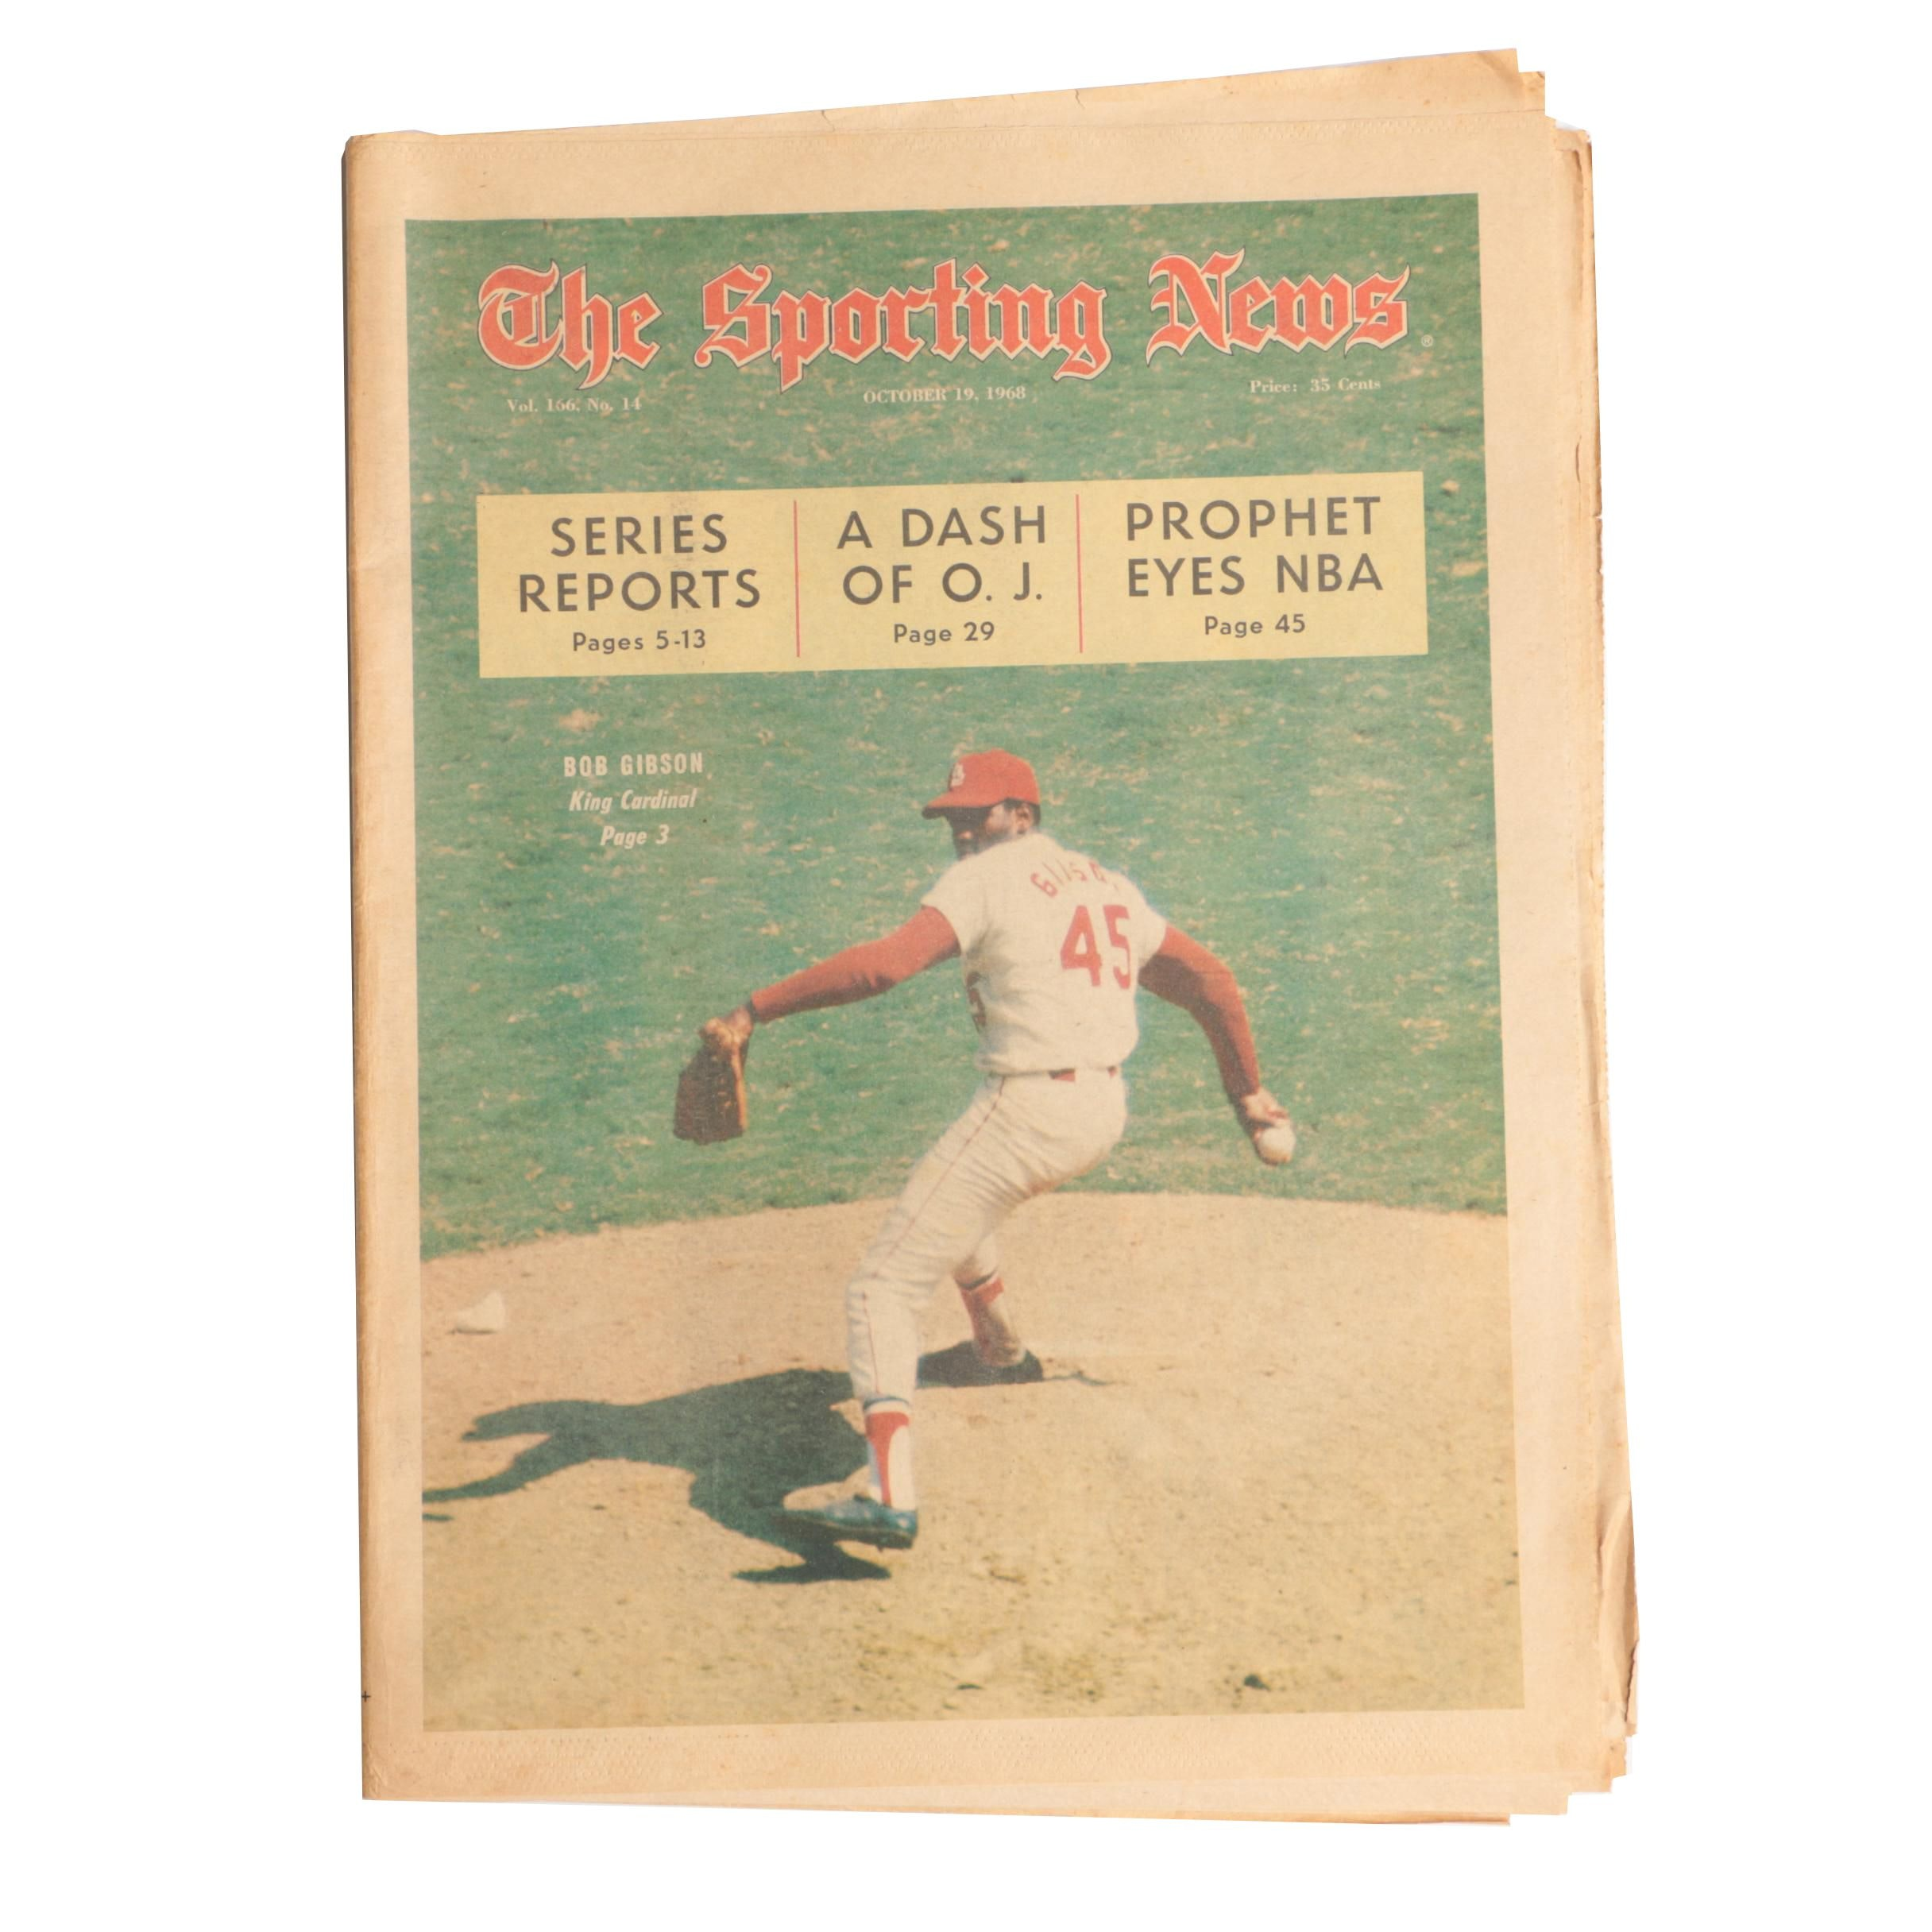 """The Sporting News"" Volume 166, No. 14, October 19, 1968"